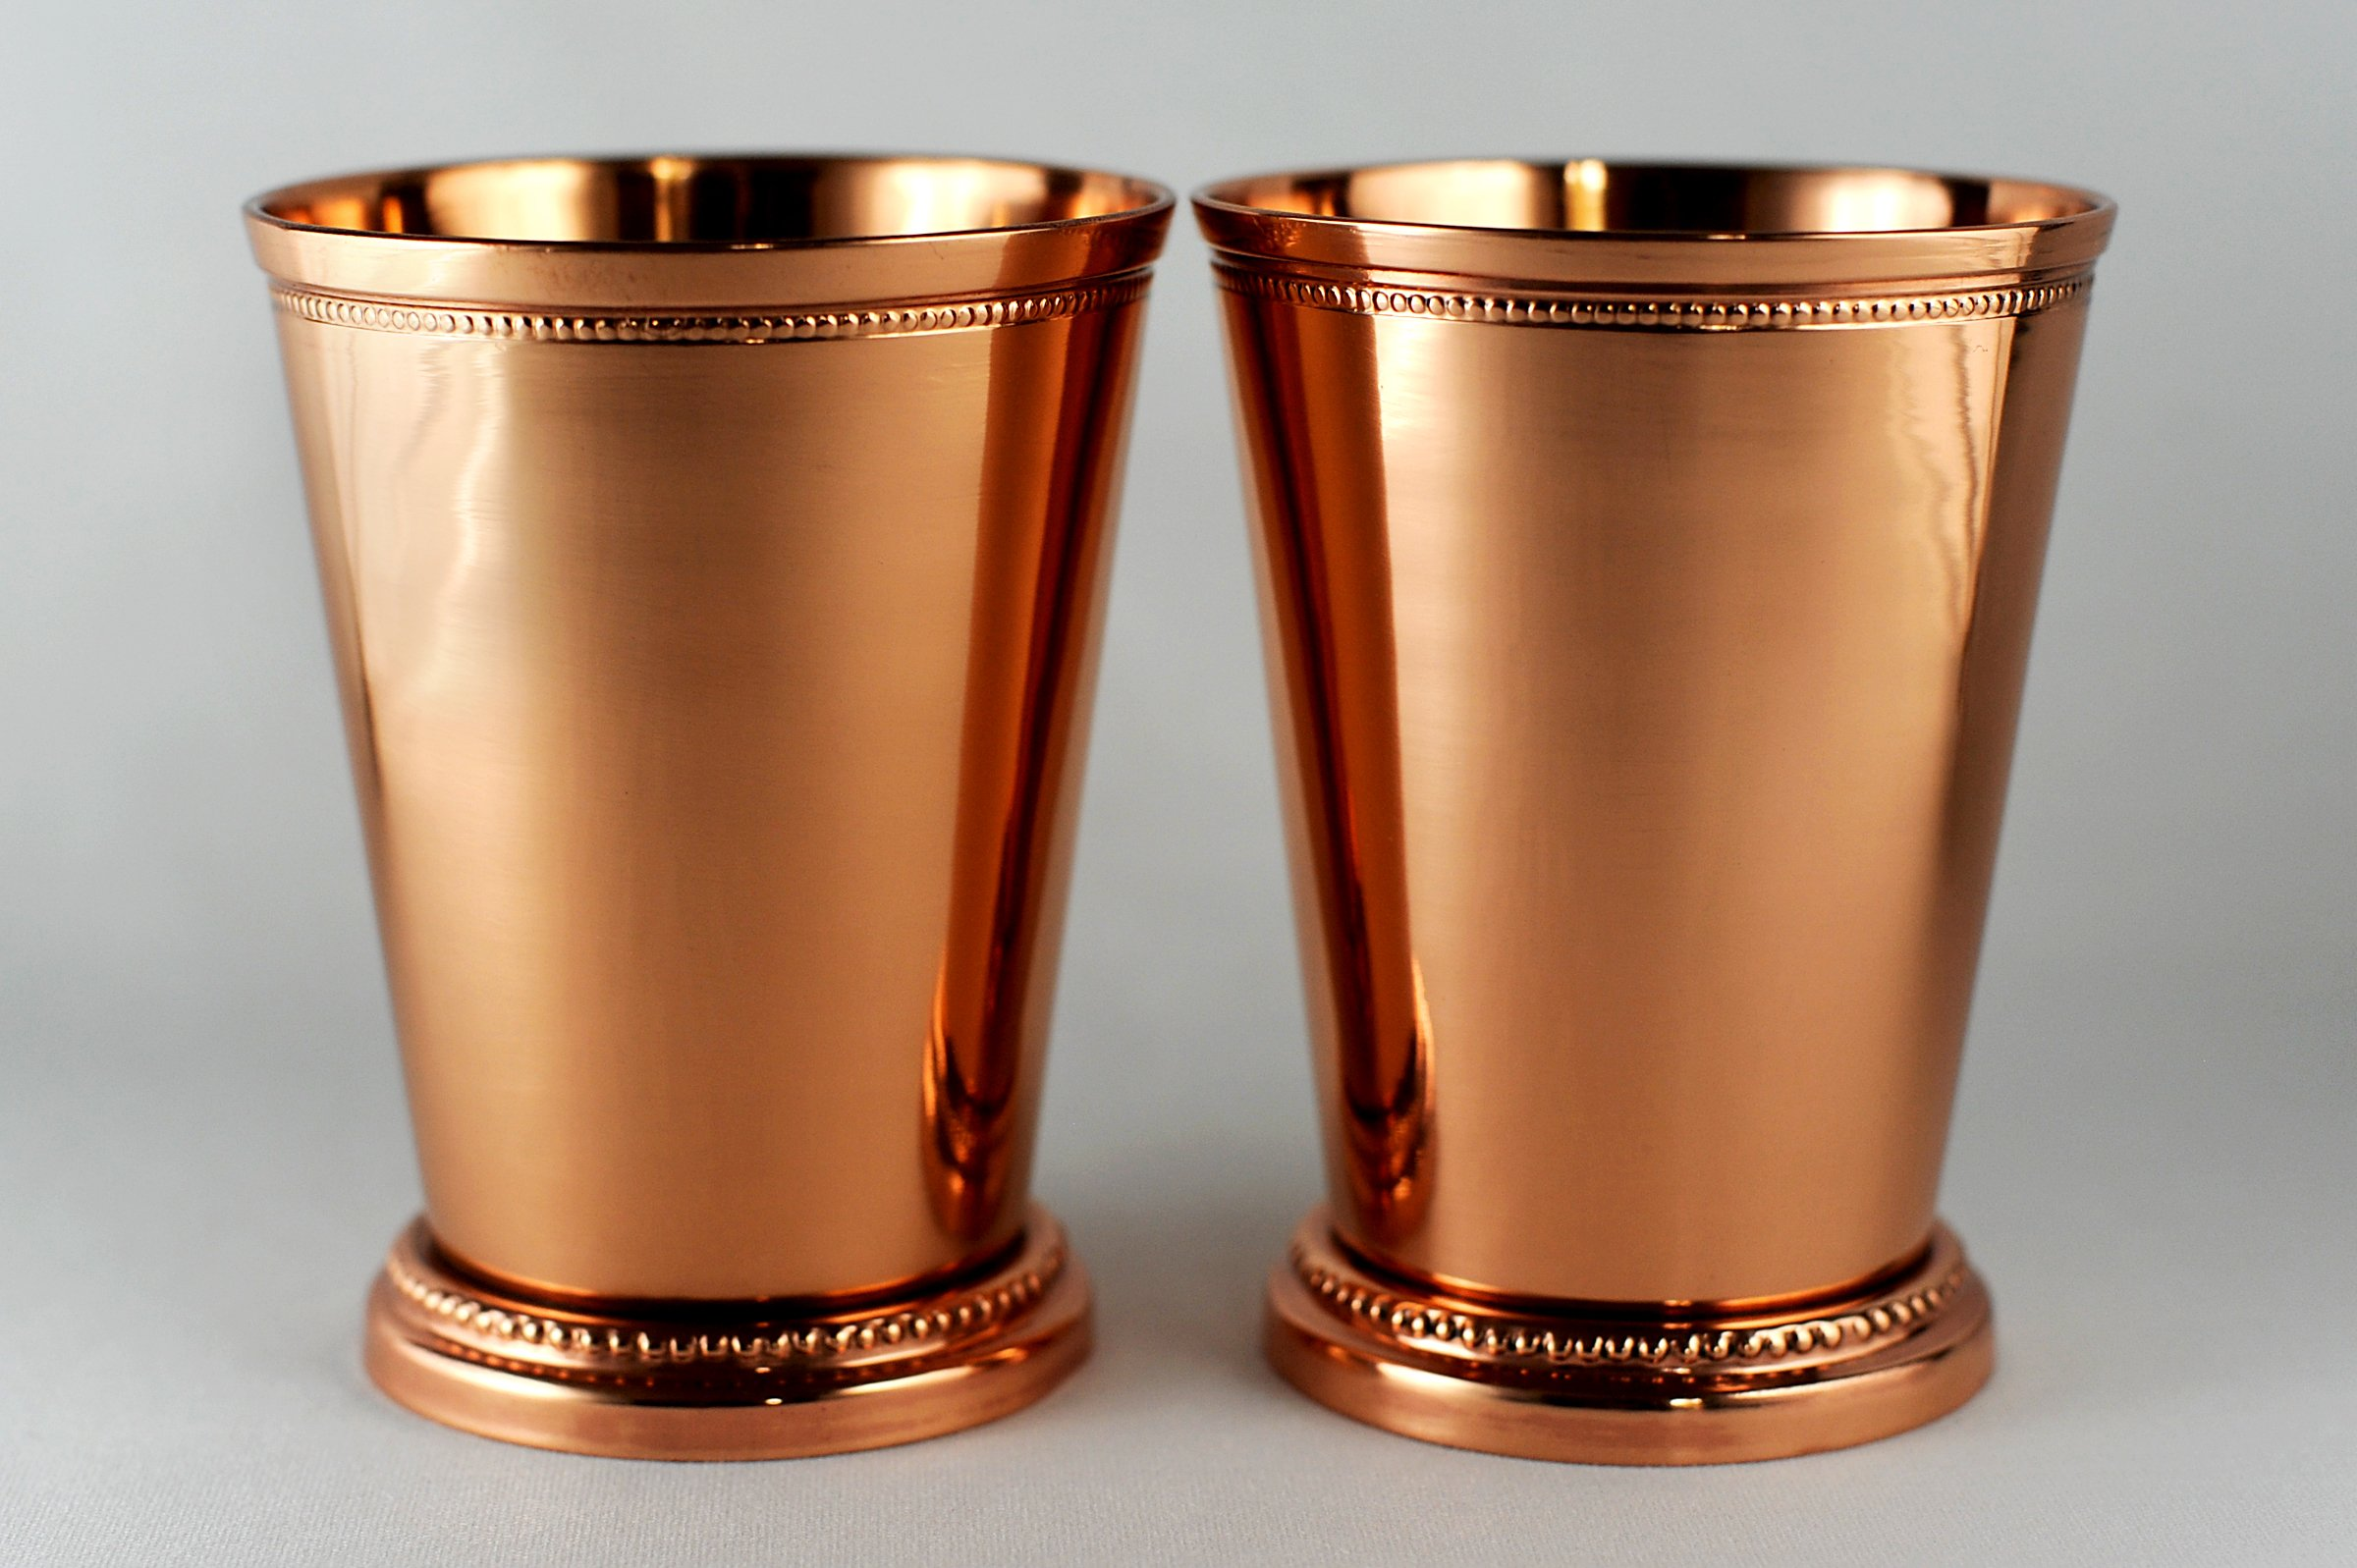 Copper Moscow Mule Mint Julep Cup – 100% pure copper, beautifully handcrafted, 12 oz size